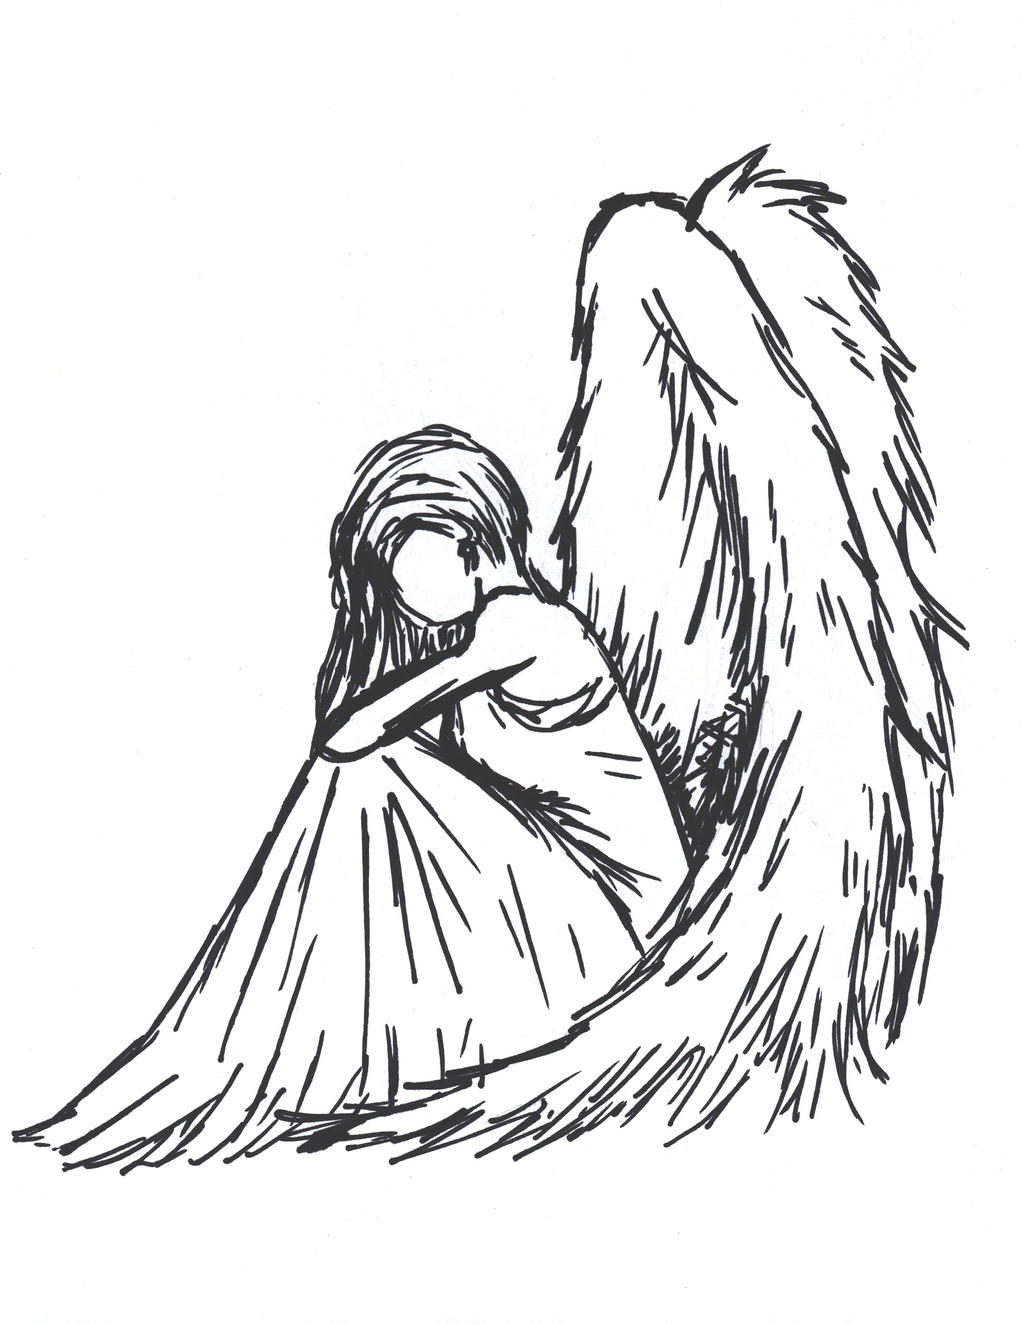 Sad Angel Sketches Sad Angel by Sioban Mckey